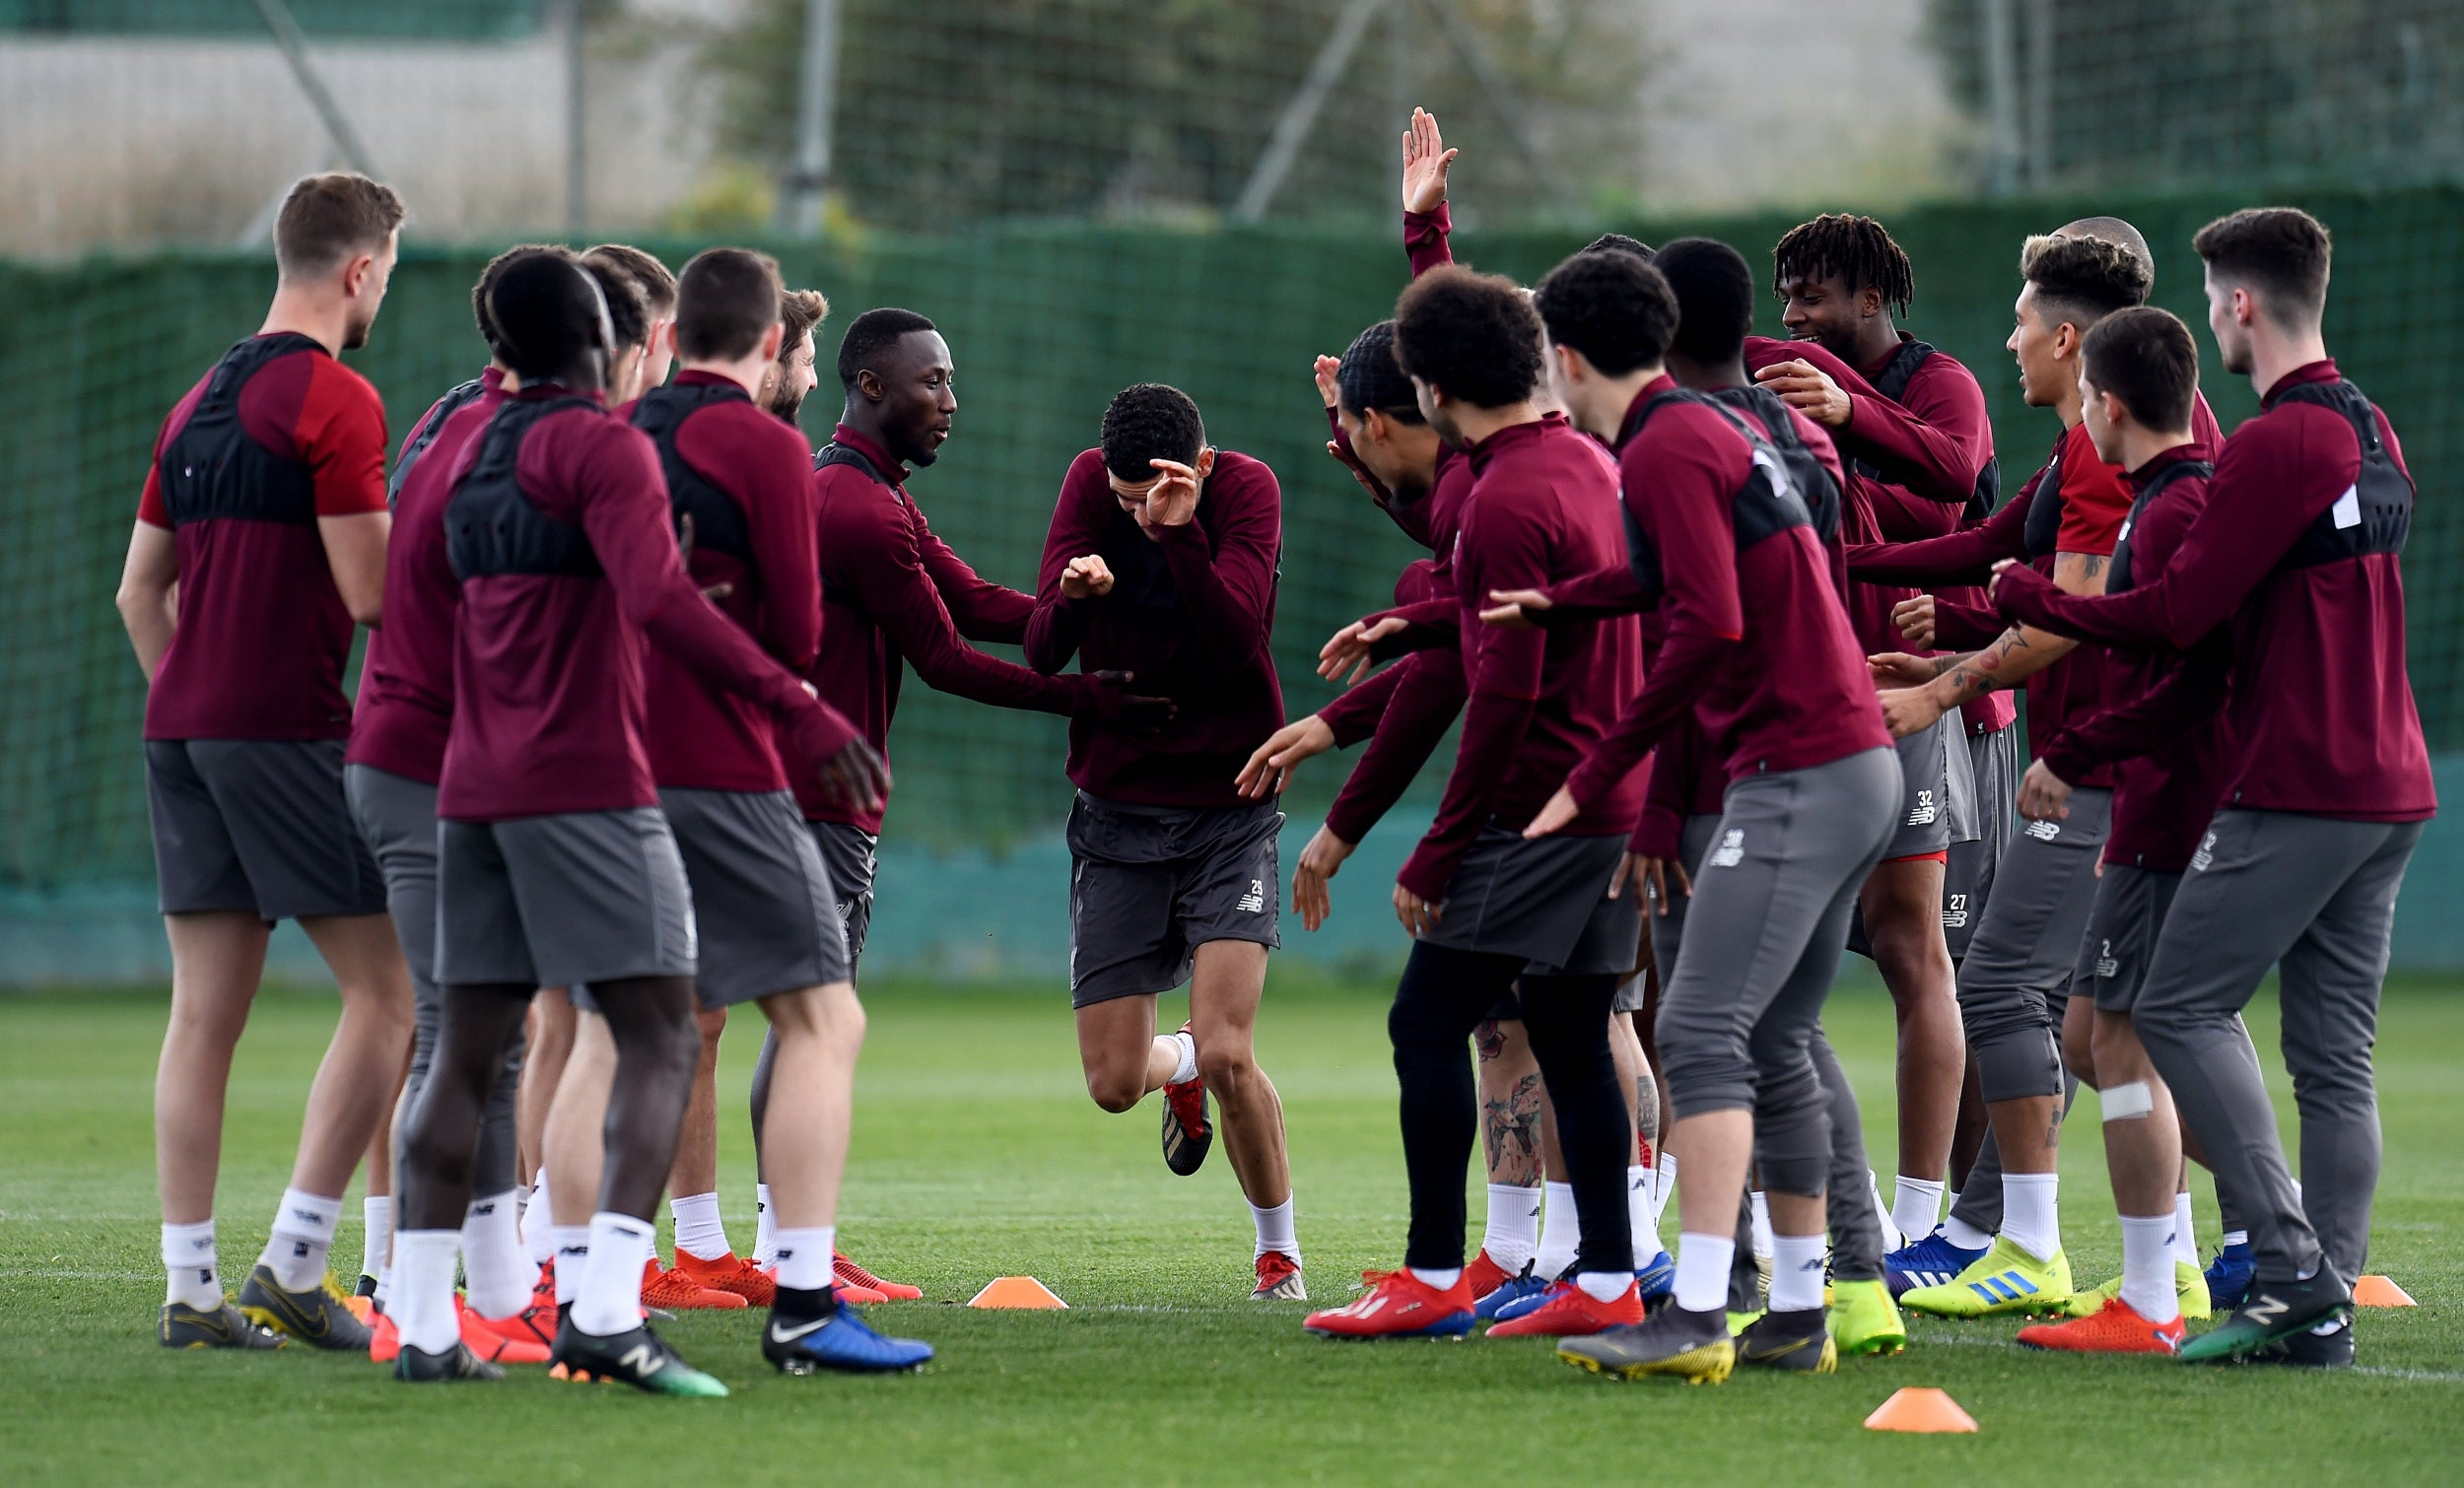 Inside Liverpool's Marbella training camp and what they